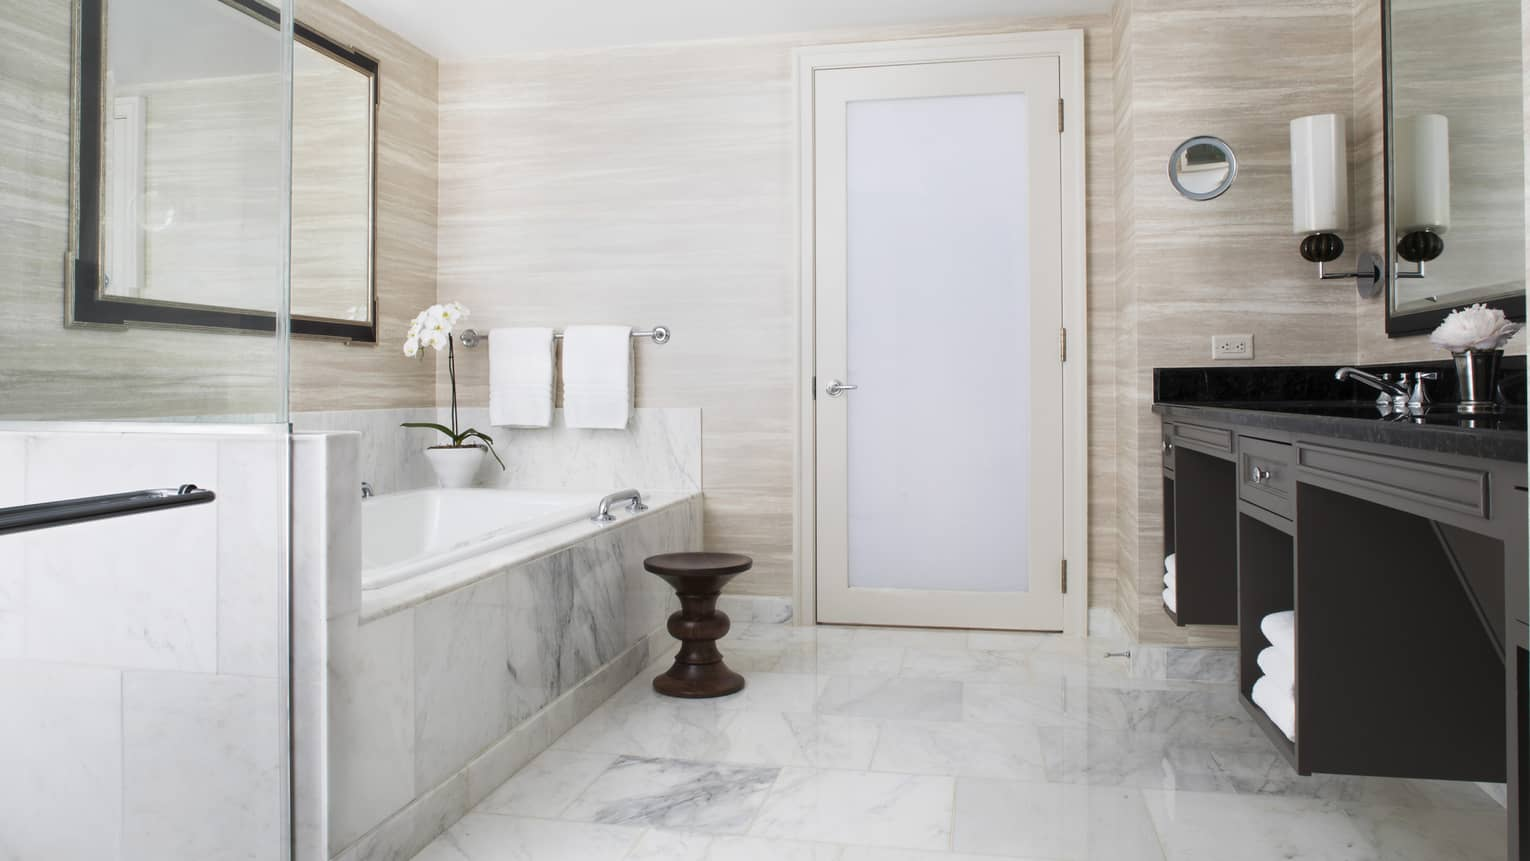 A light colored bathroom with a marble bathtub